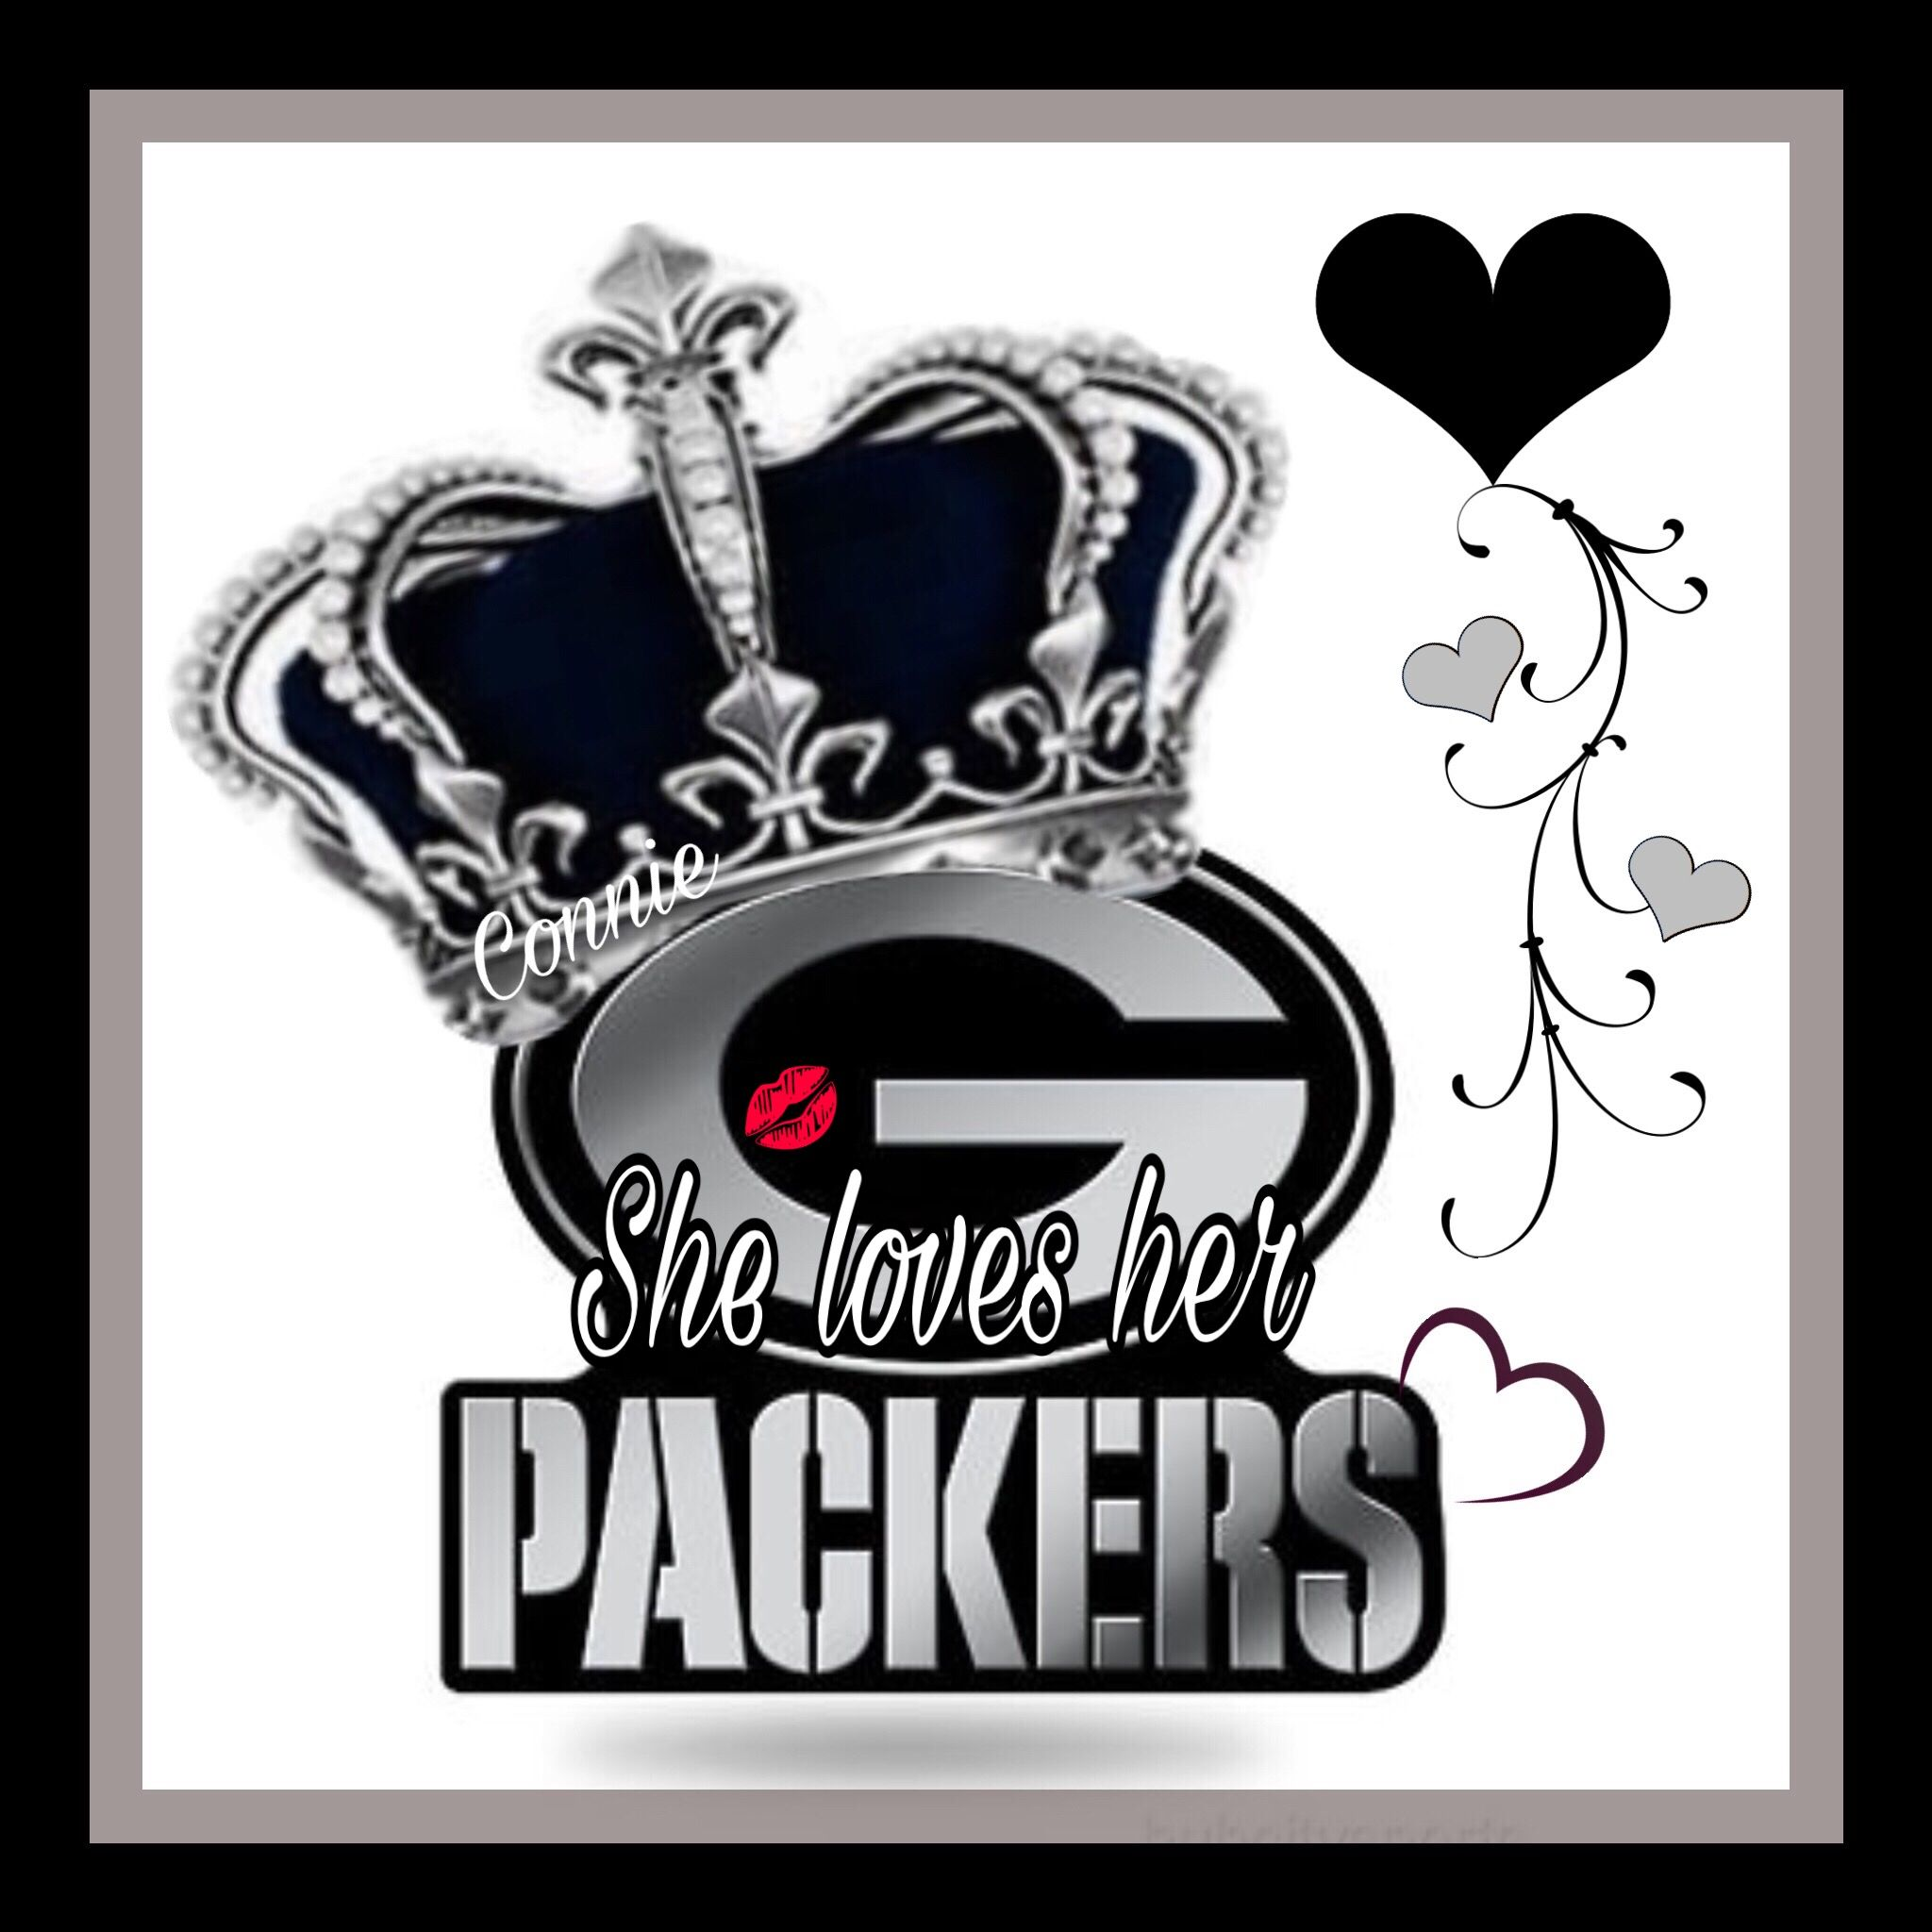 Pin By Shanton Downing On Pallet Green Bay Packers Art Green Bay Packers Football Green Bay Packers Aaron Rodgers